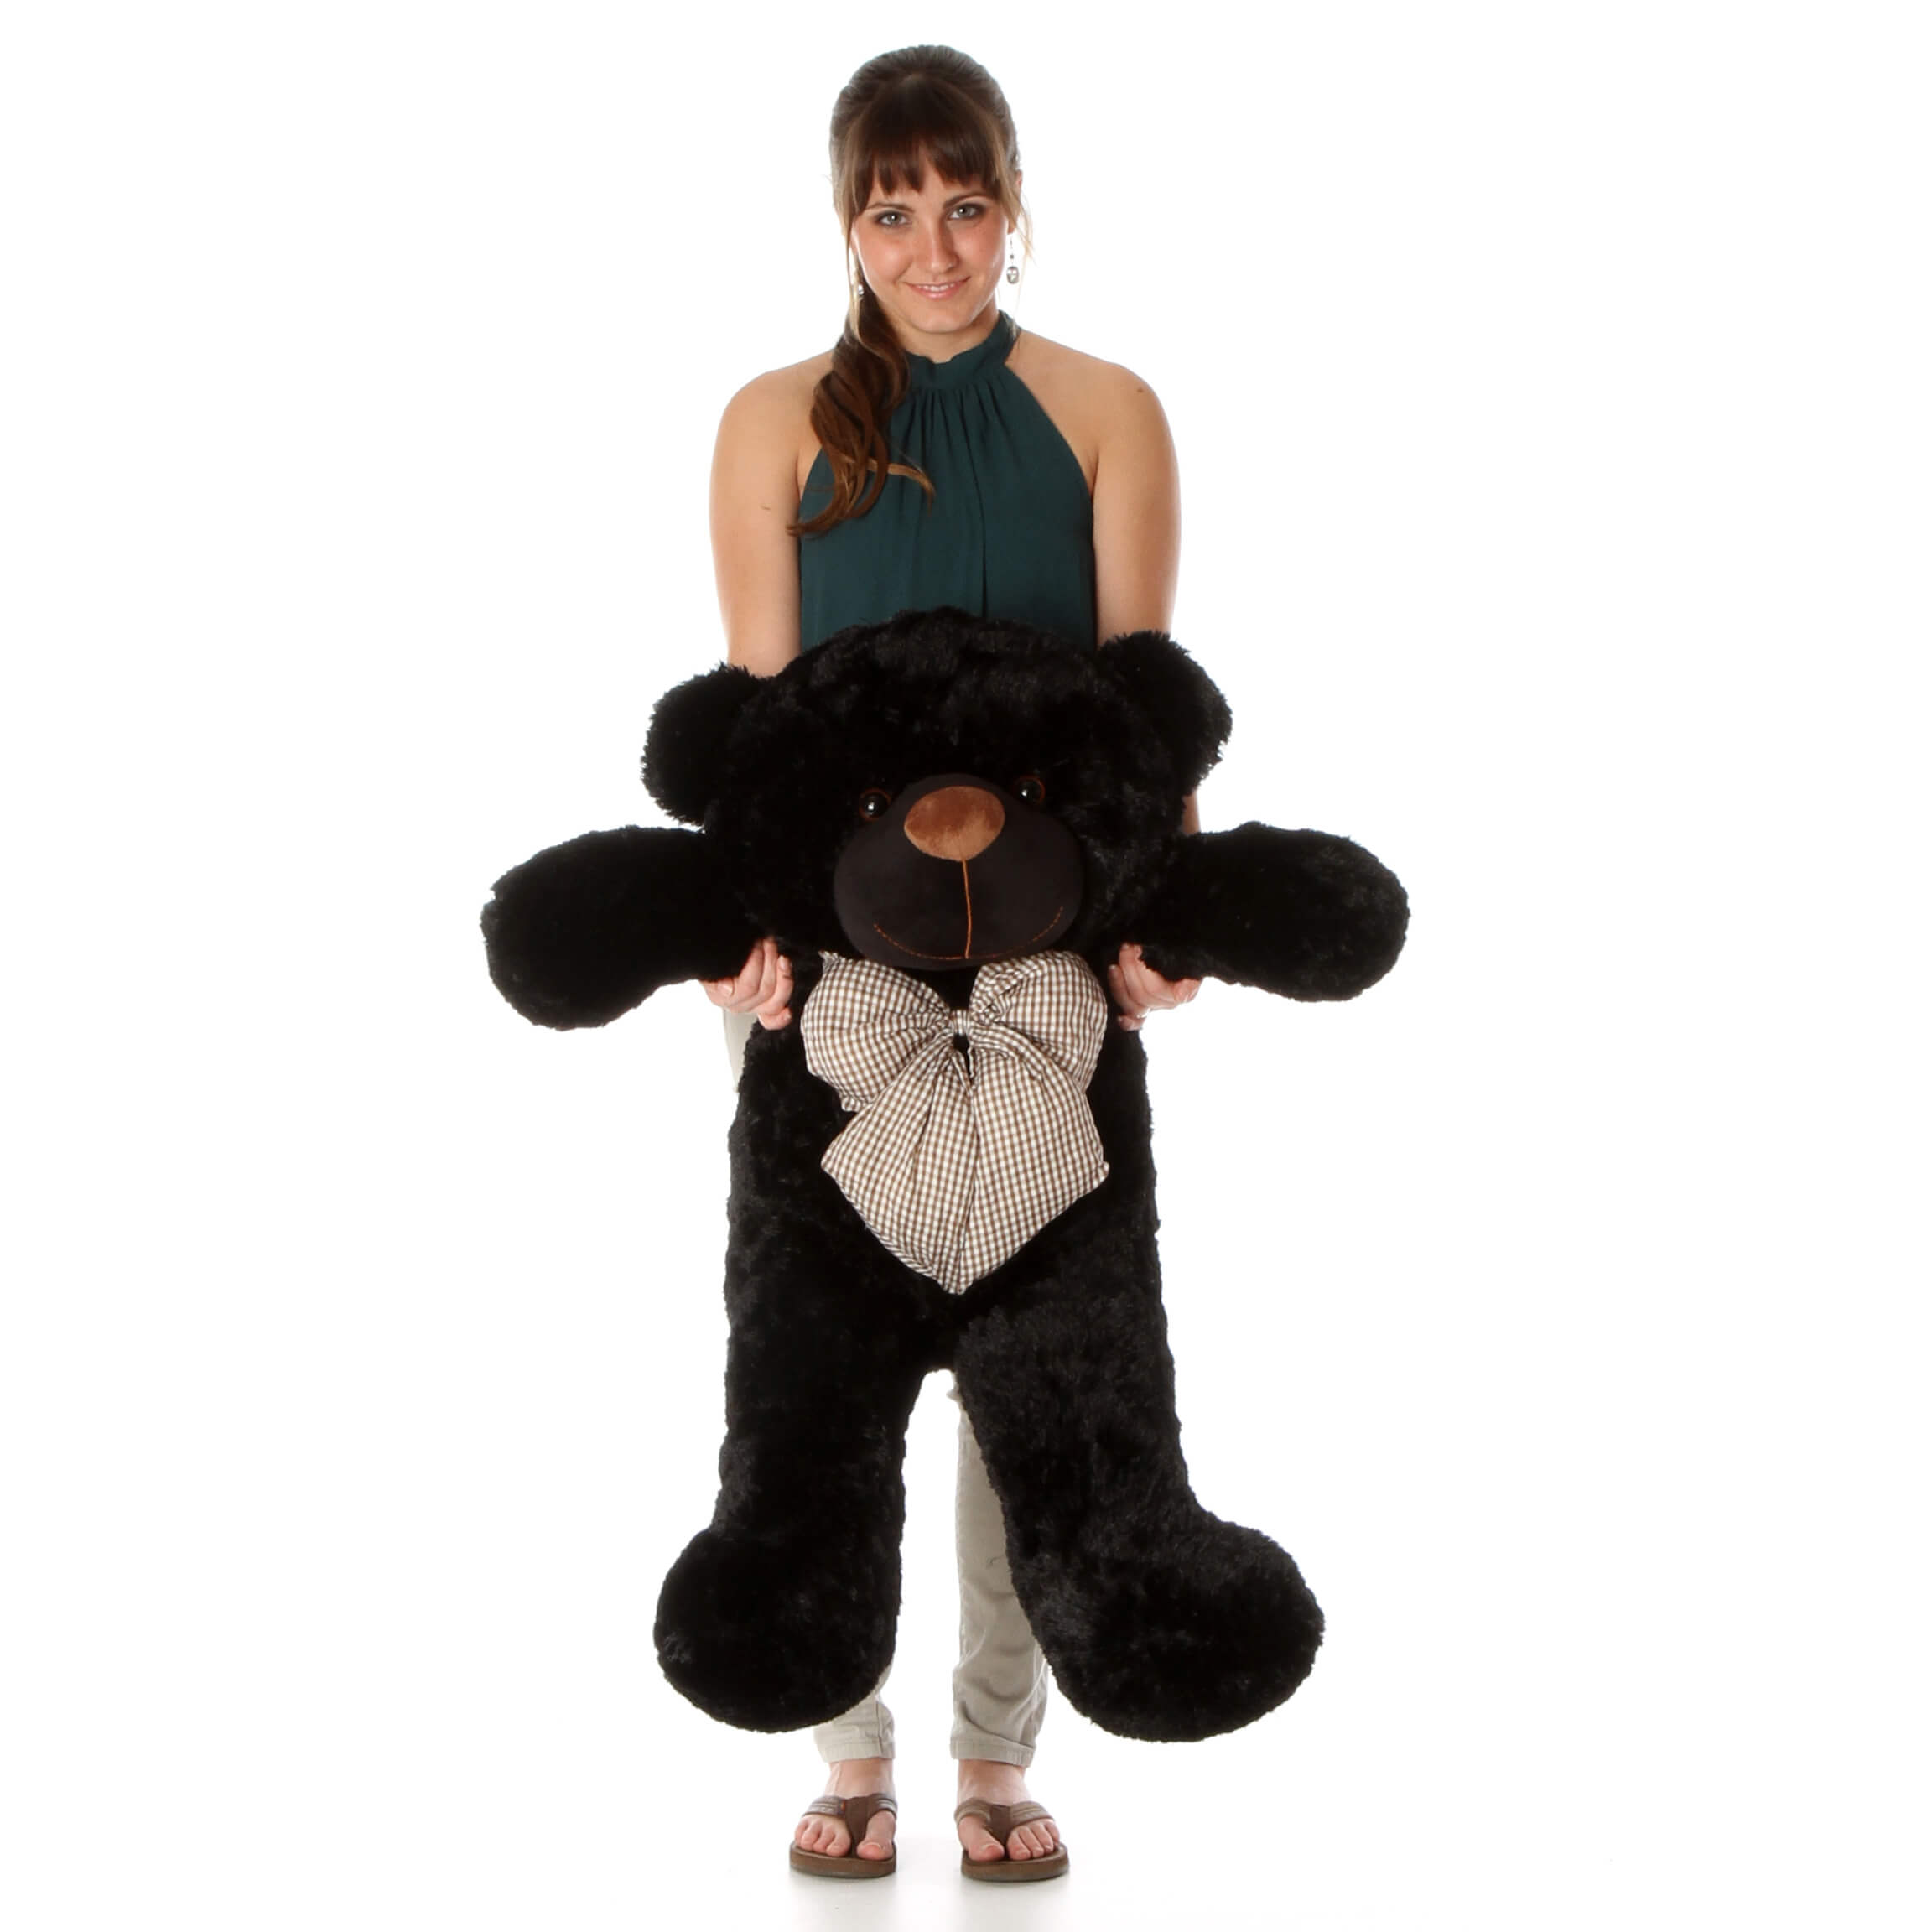 huge-adorable-gift-black-teddy-bear-juju-cuddles-38in-1.jpg